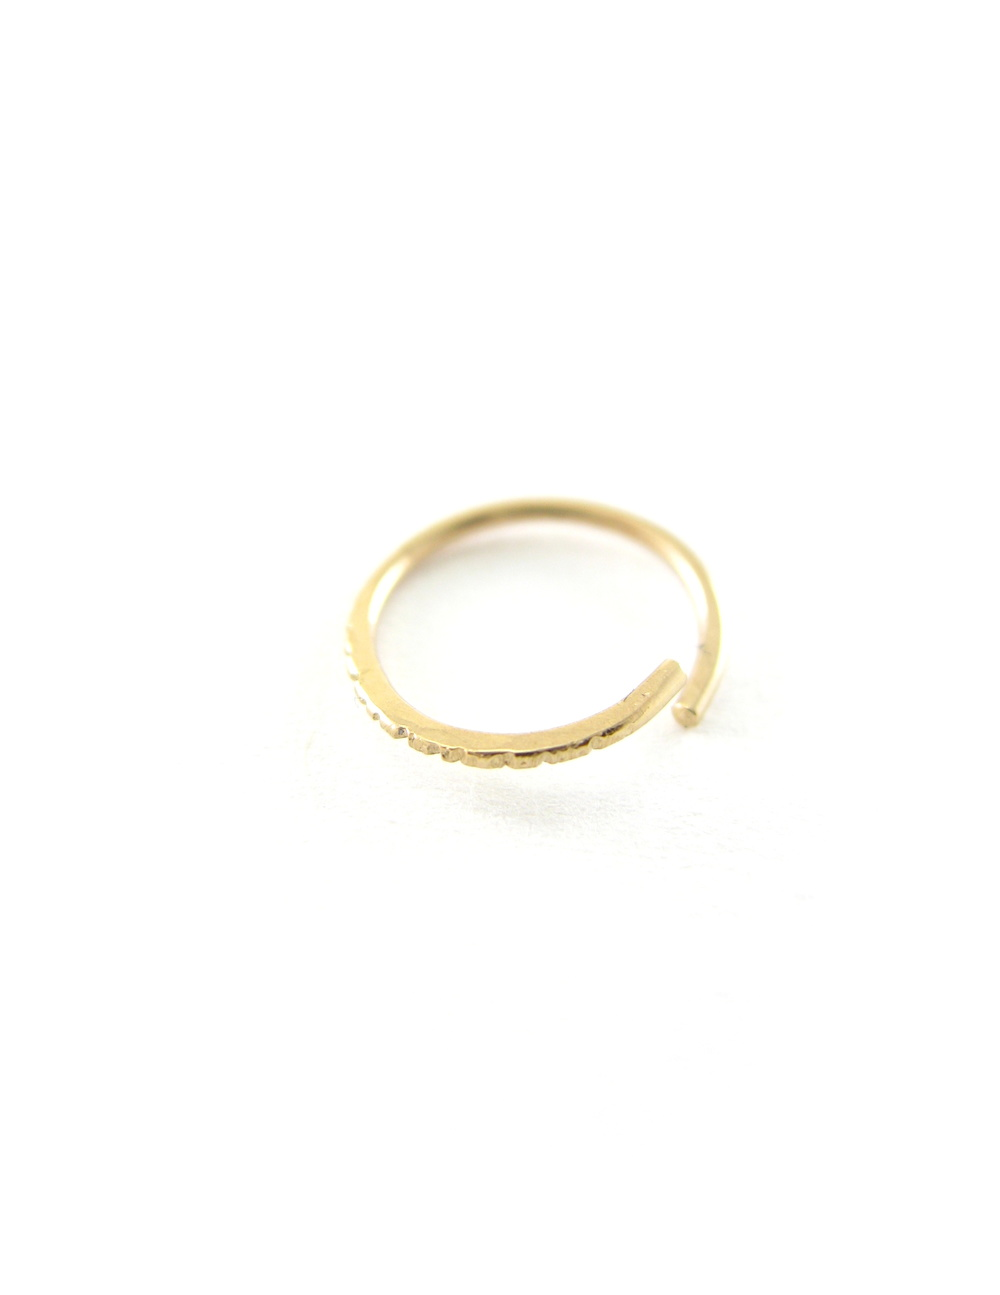 TEXTURED NOSE RING - RECYCLED 14K GOLD — Sharon Z Jewelry